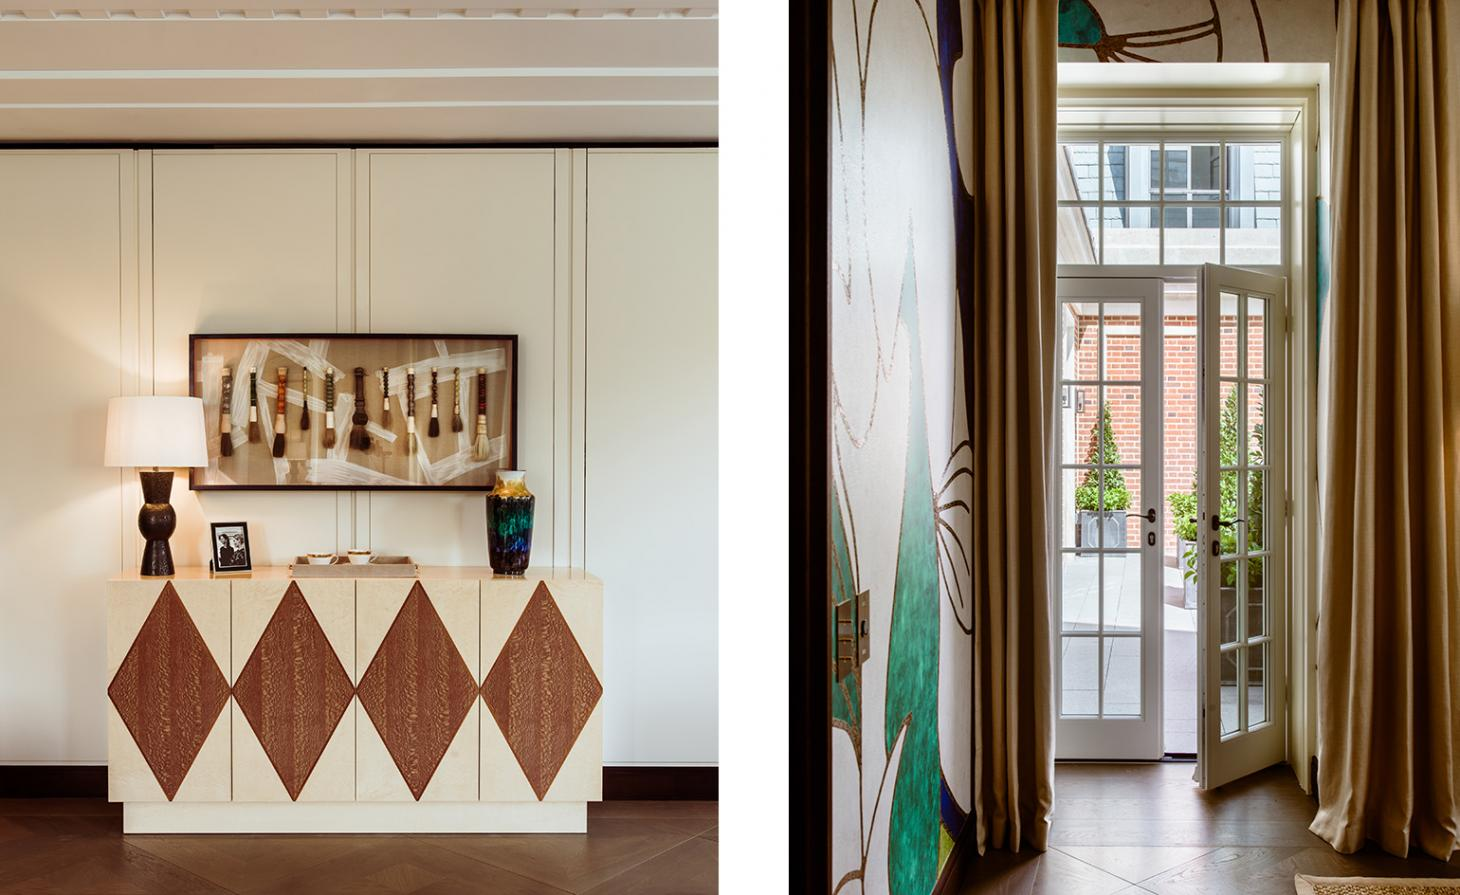 No.1 Grosvenor Square living space details and terrace looking out